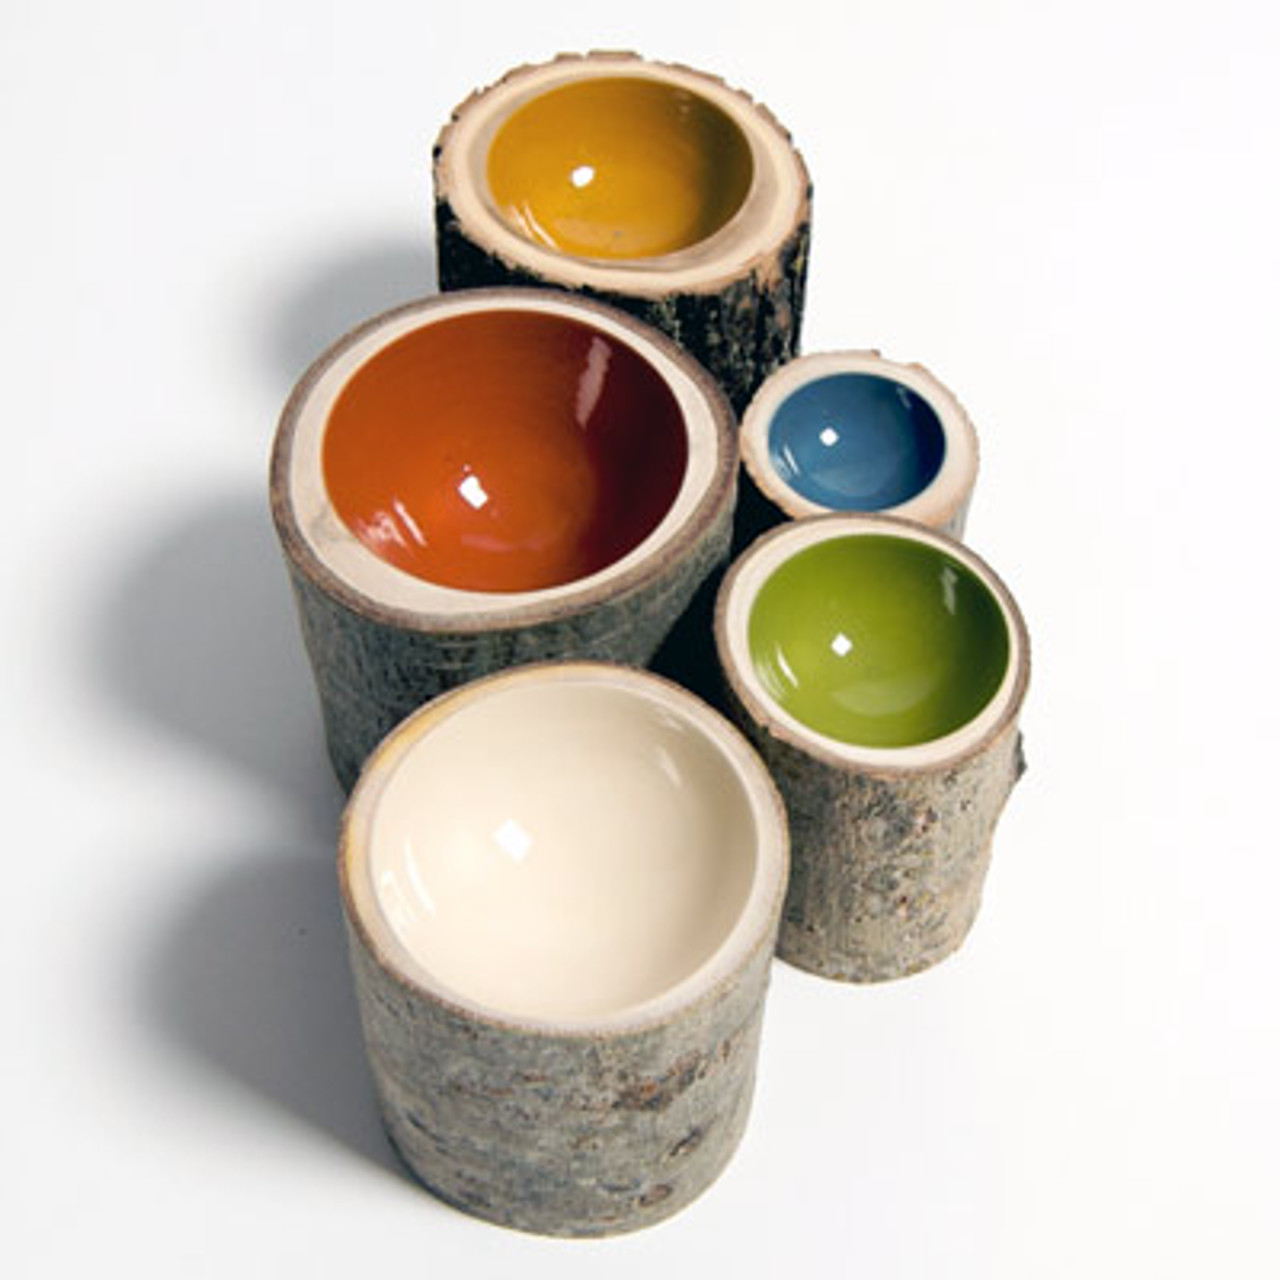 Log Bowls from the loyal loot Collective in Alberta, Canada